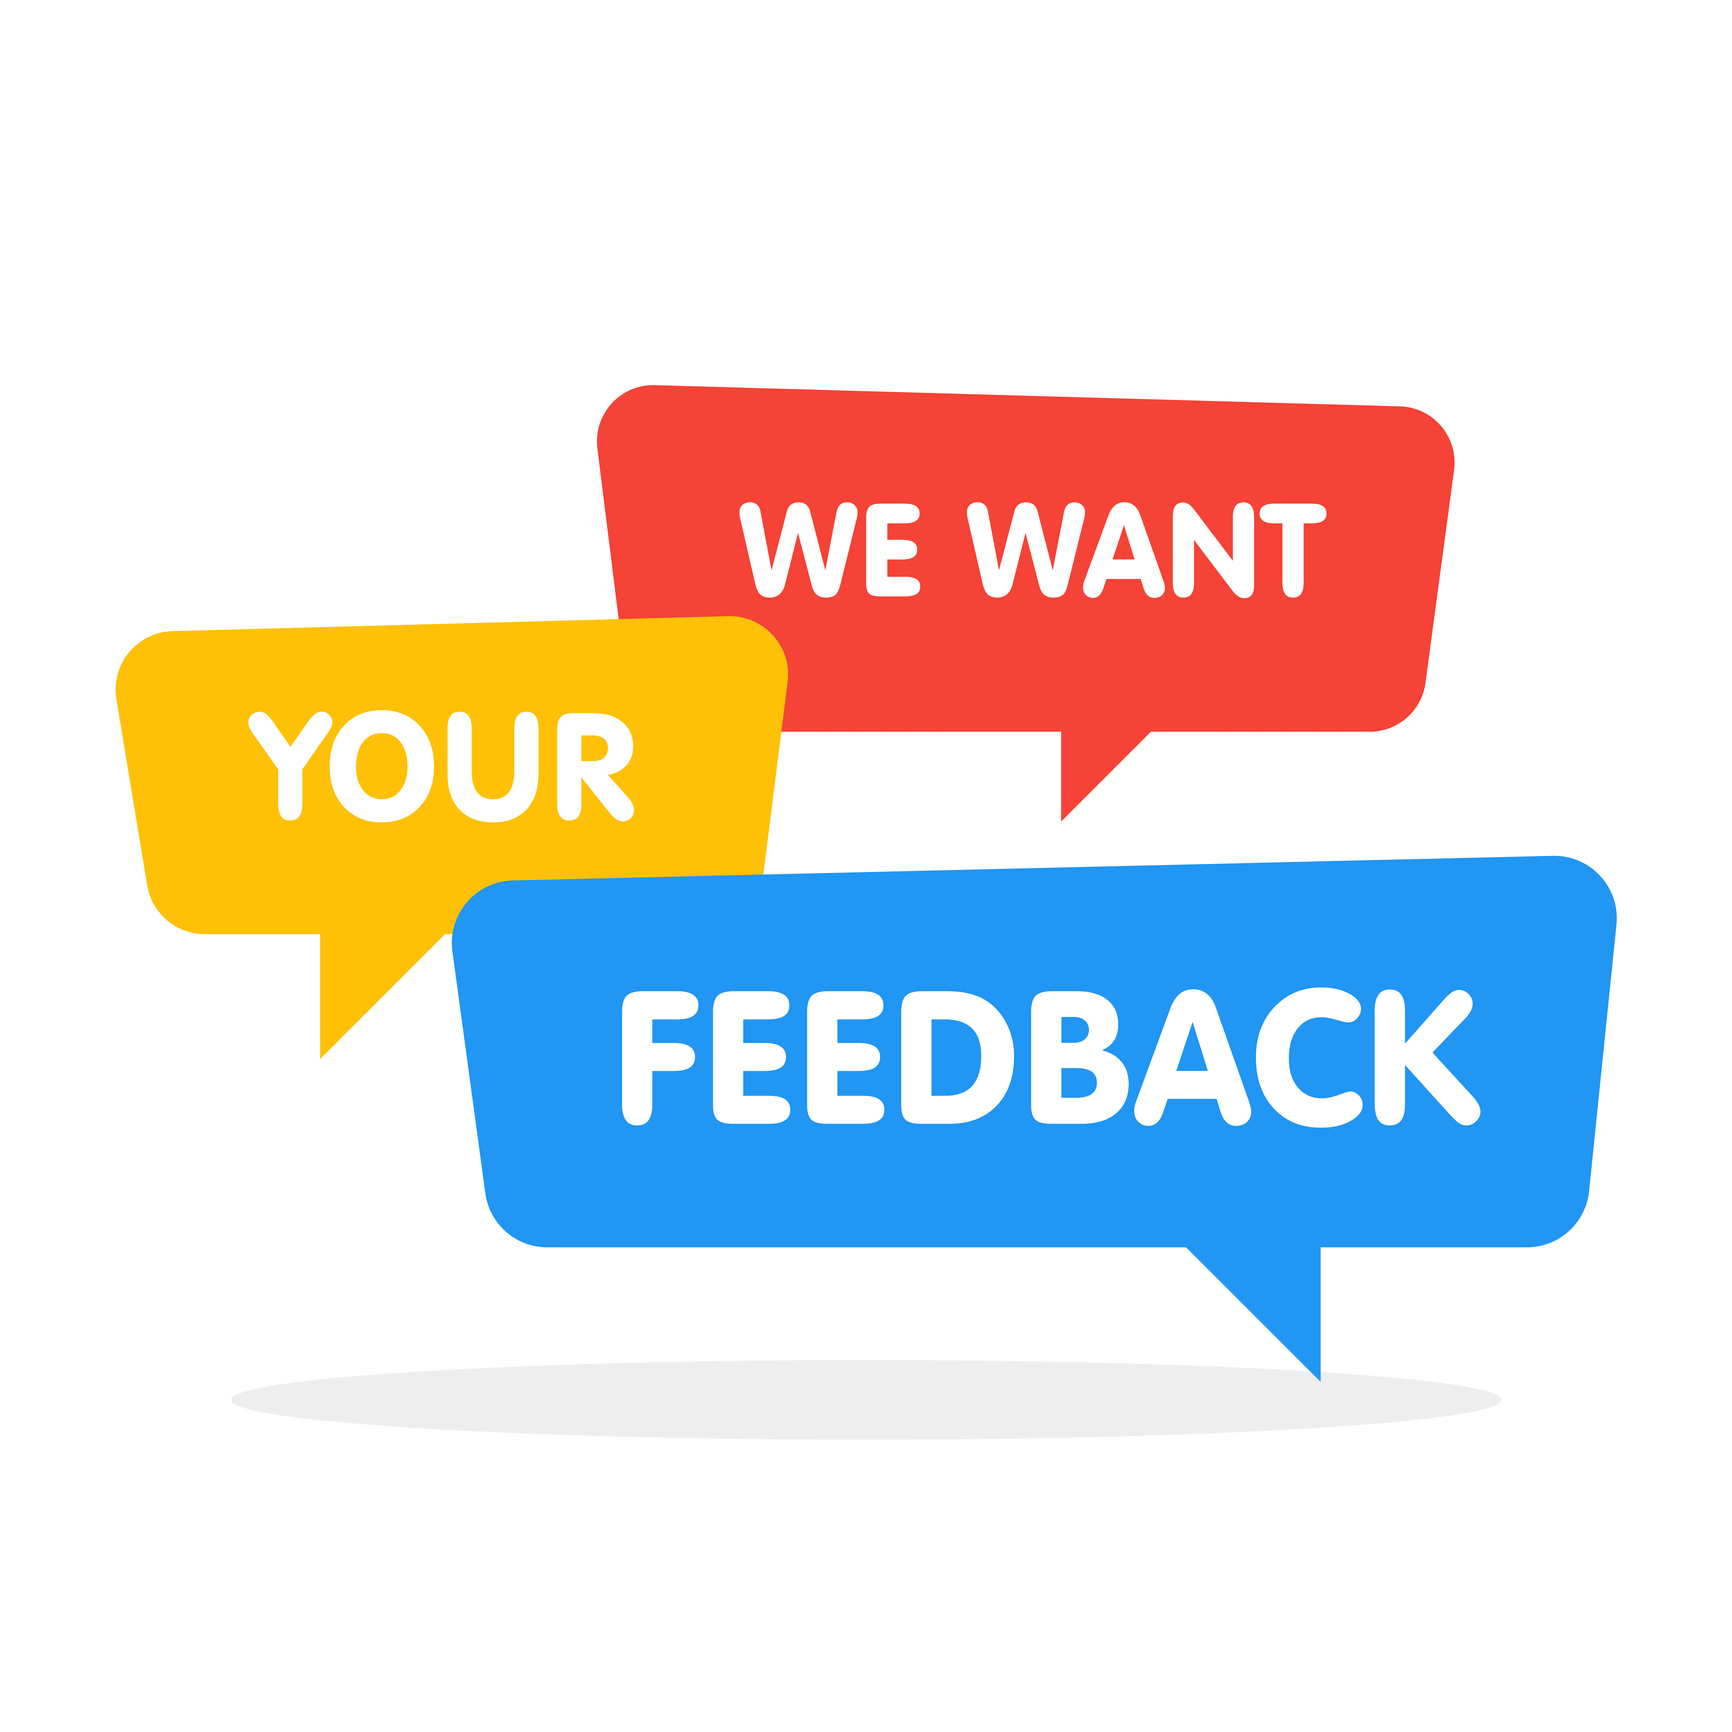 We want to hear from you! Take our PARENT SURVEY